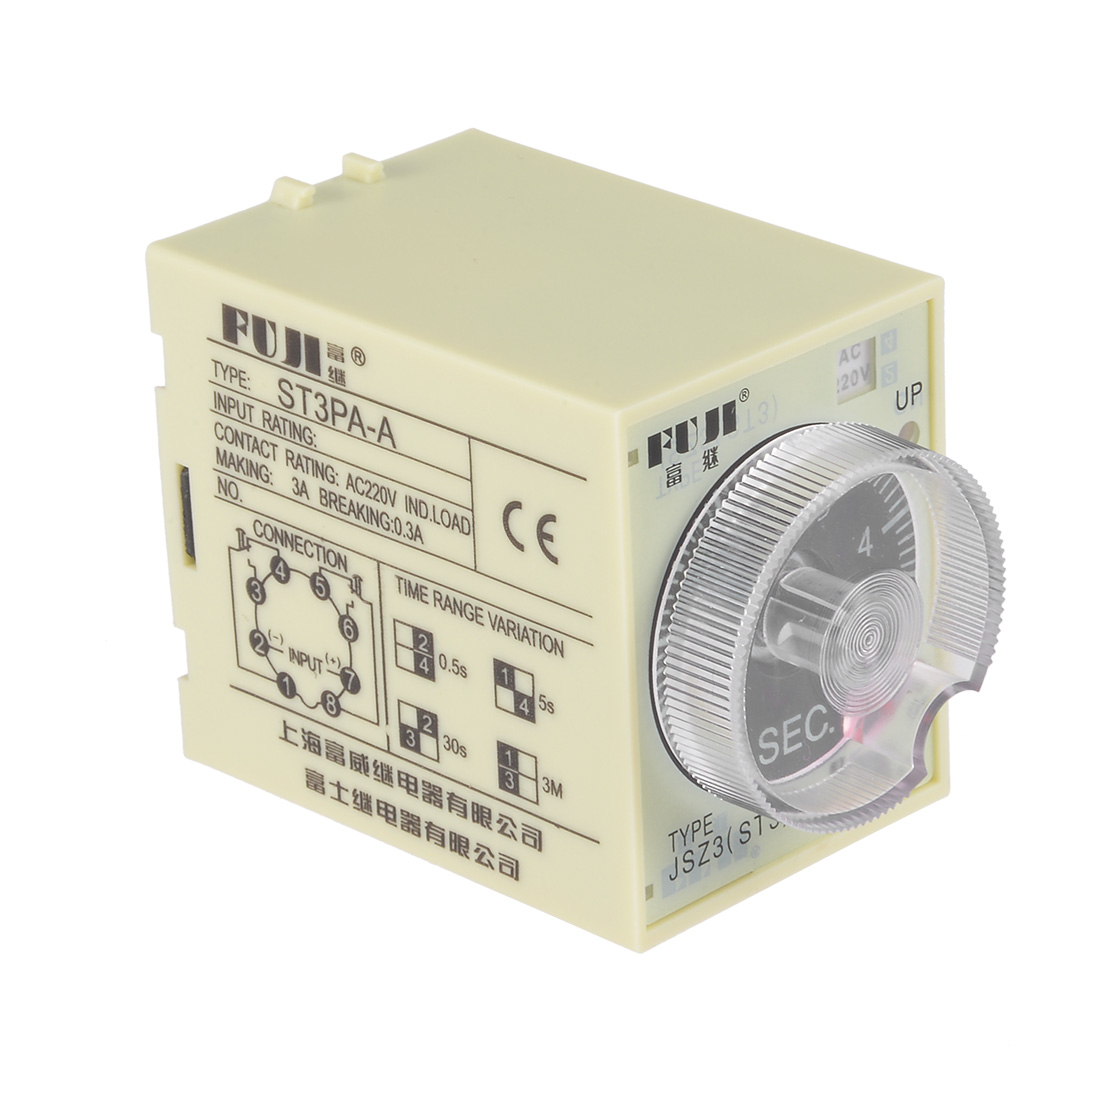 AC220V 5S 8 Terminals Range Adjustable Delay Timer Time Relay ST3PA-A